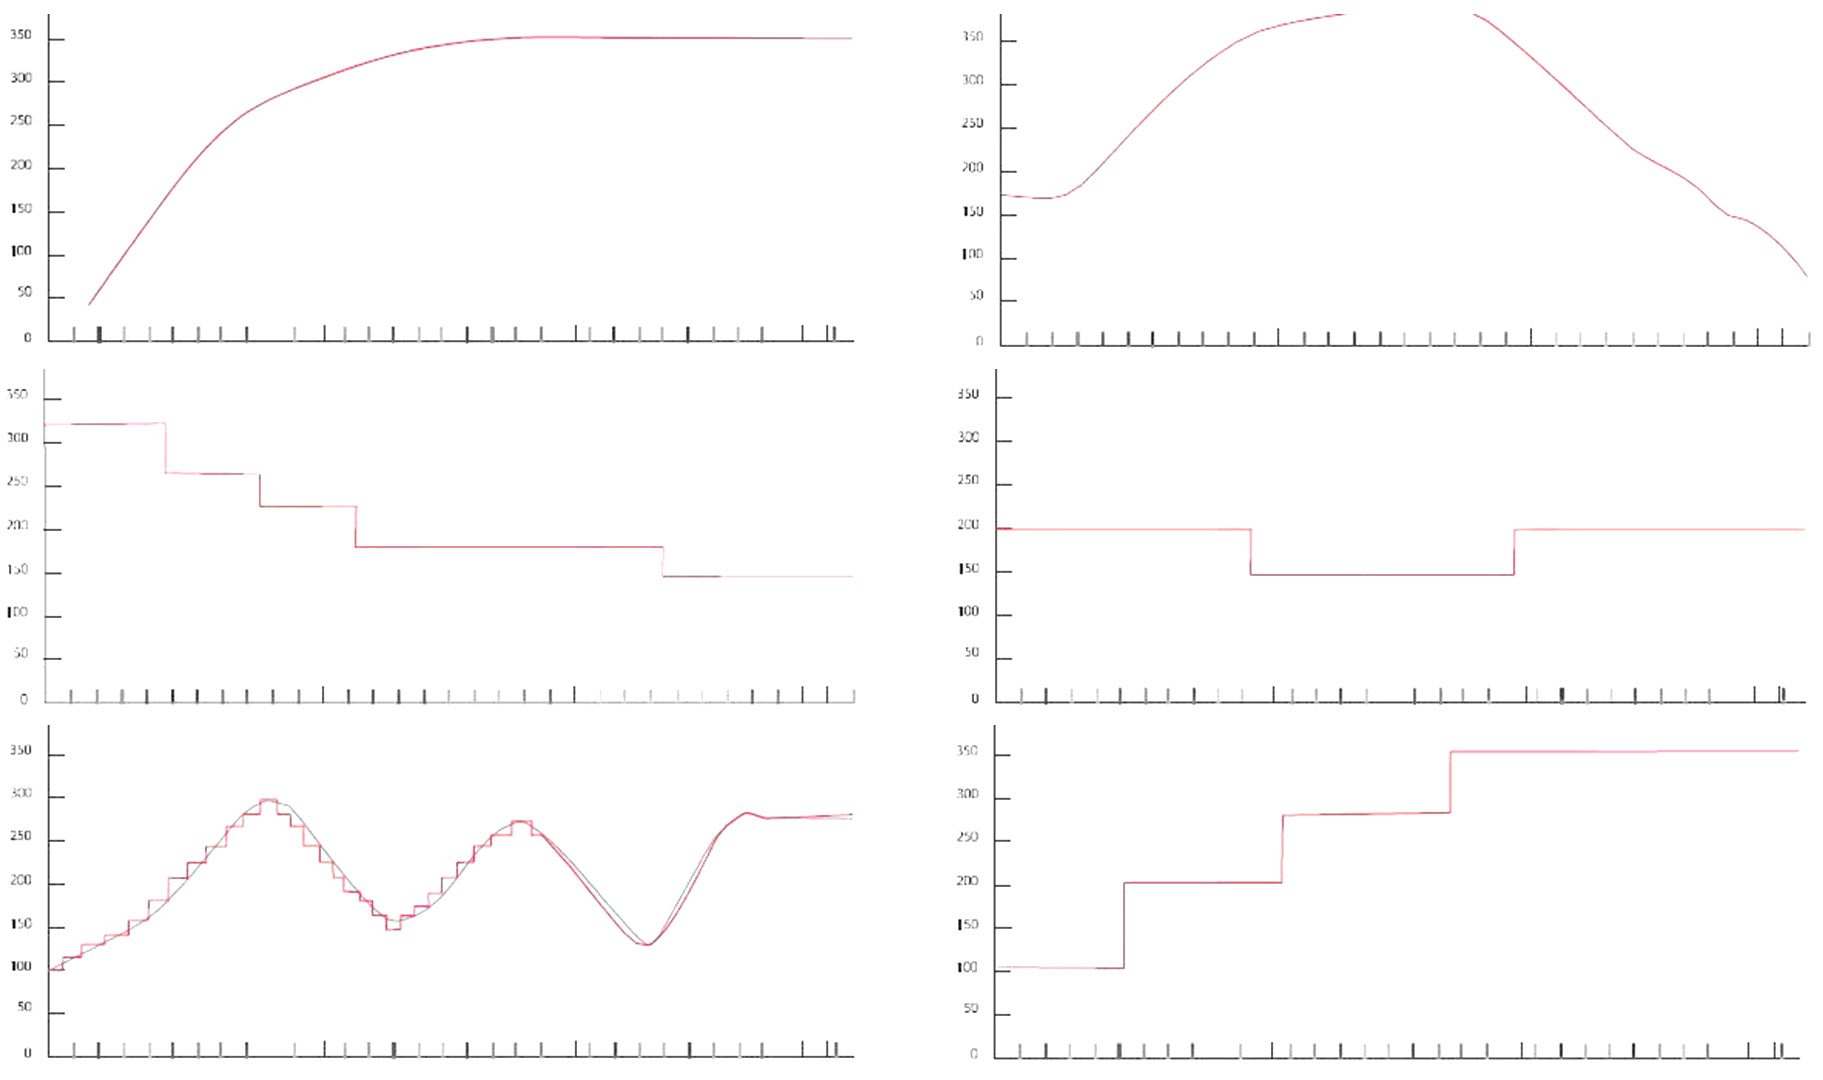 distribution graph of gradient oven at different temperatures